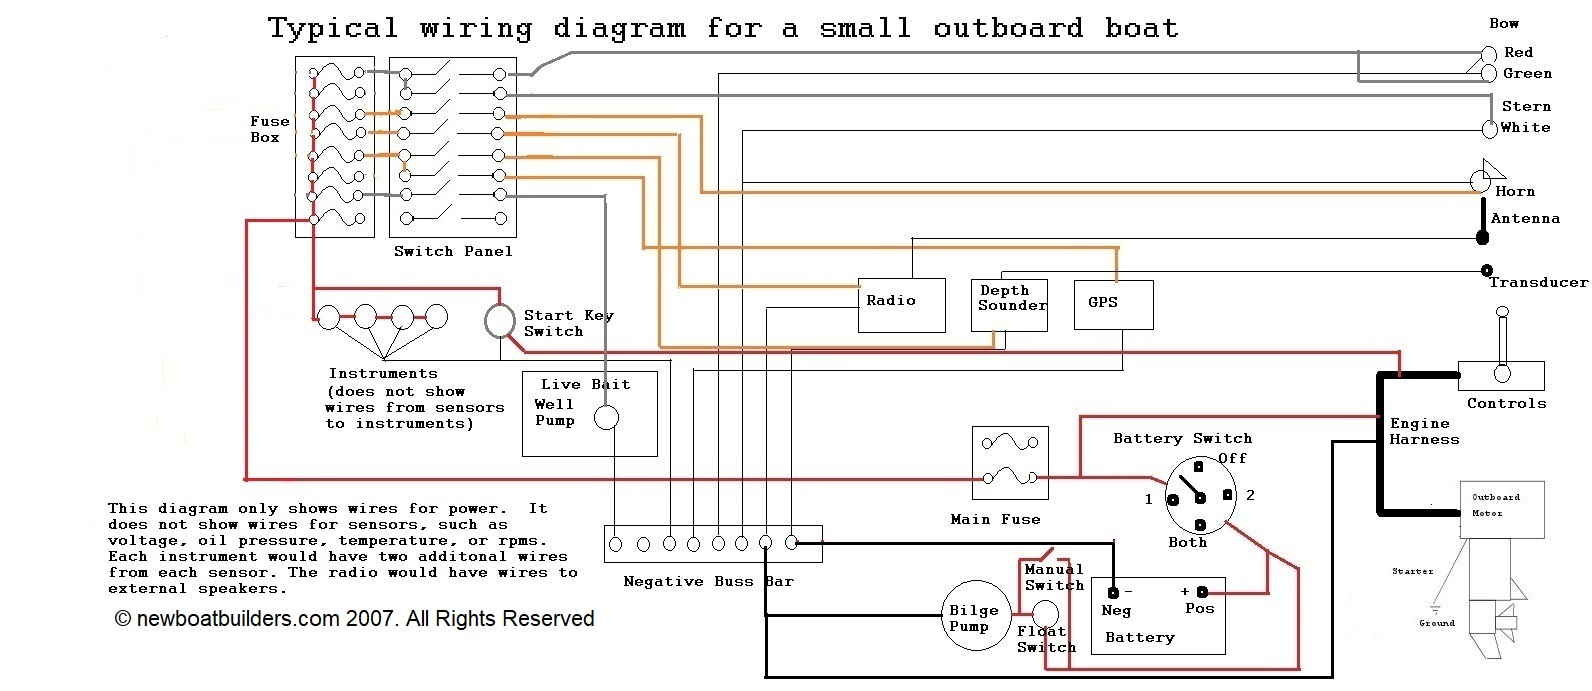 sailboat wiring diagram general wiring diagram information u2022 rh velvetfive co uk